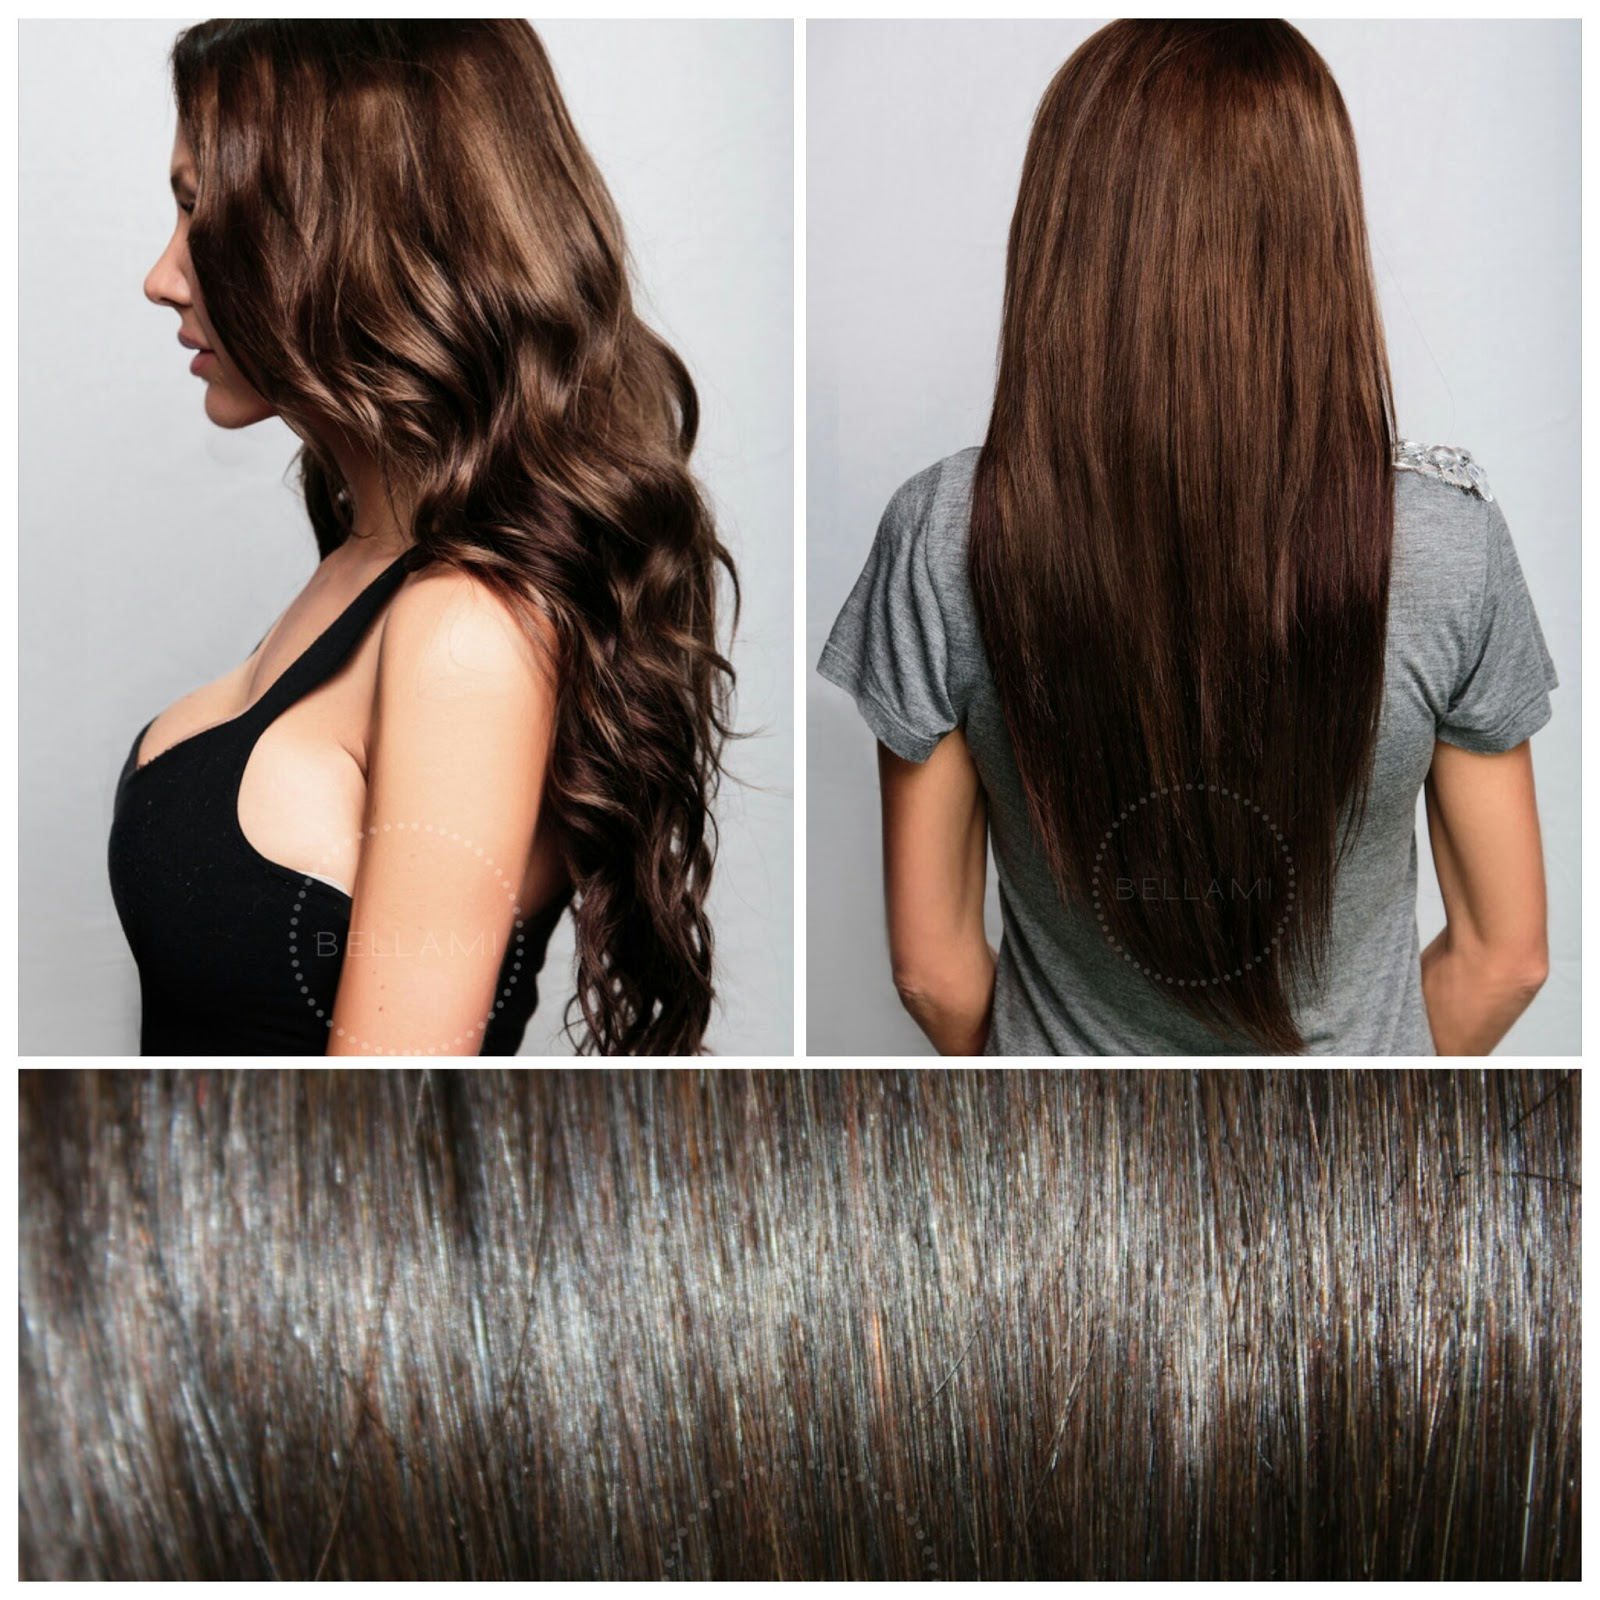 Lacarene bellami hair bellissima 220g 22 bellami clip in hair bellami clip in hair extensions are produced with 100 remy human hair because of this bellami hair extensions naturally blend with your own hair and can pmusecretfo Image collections